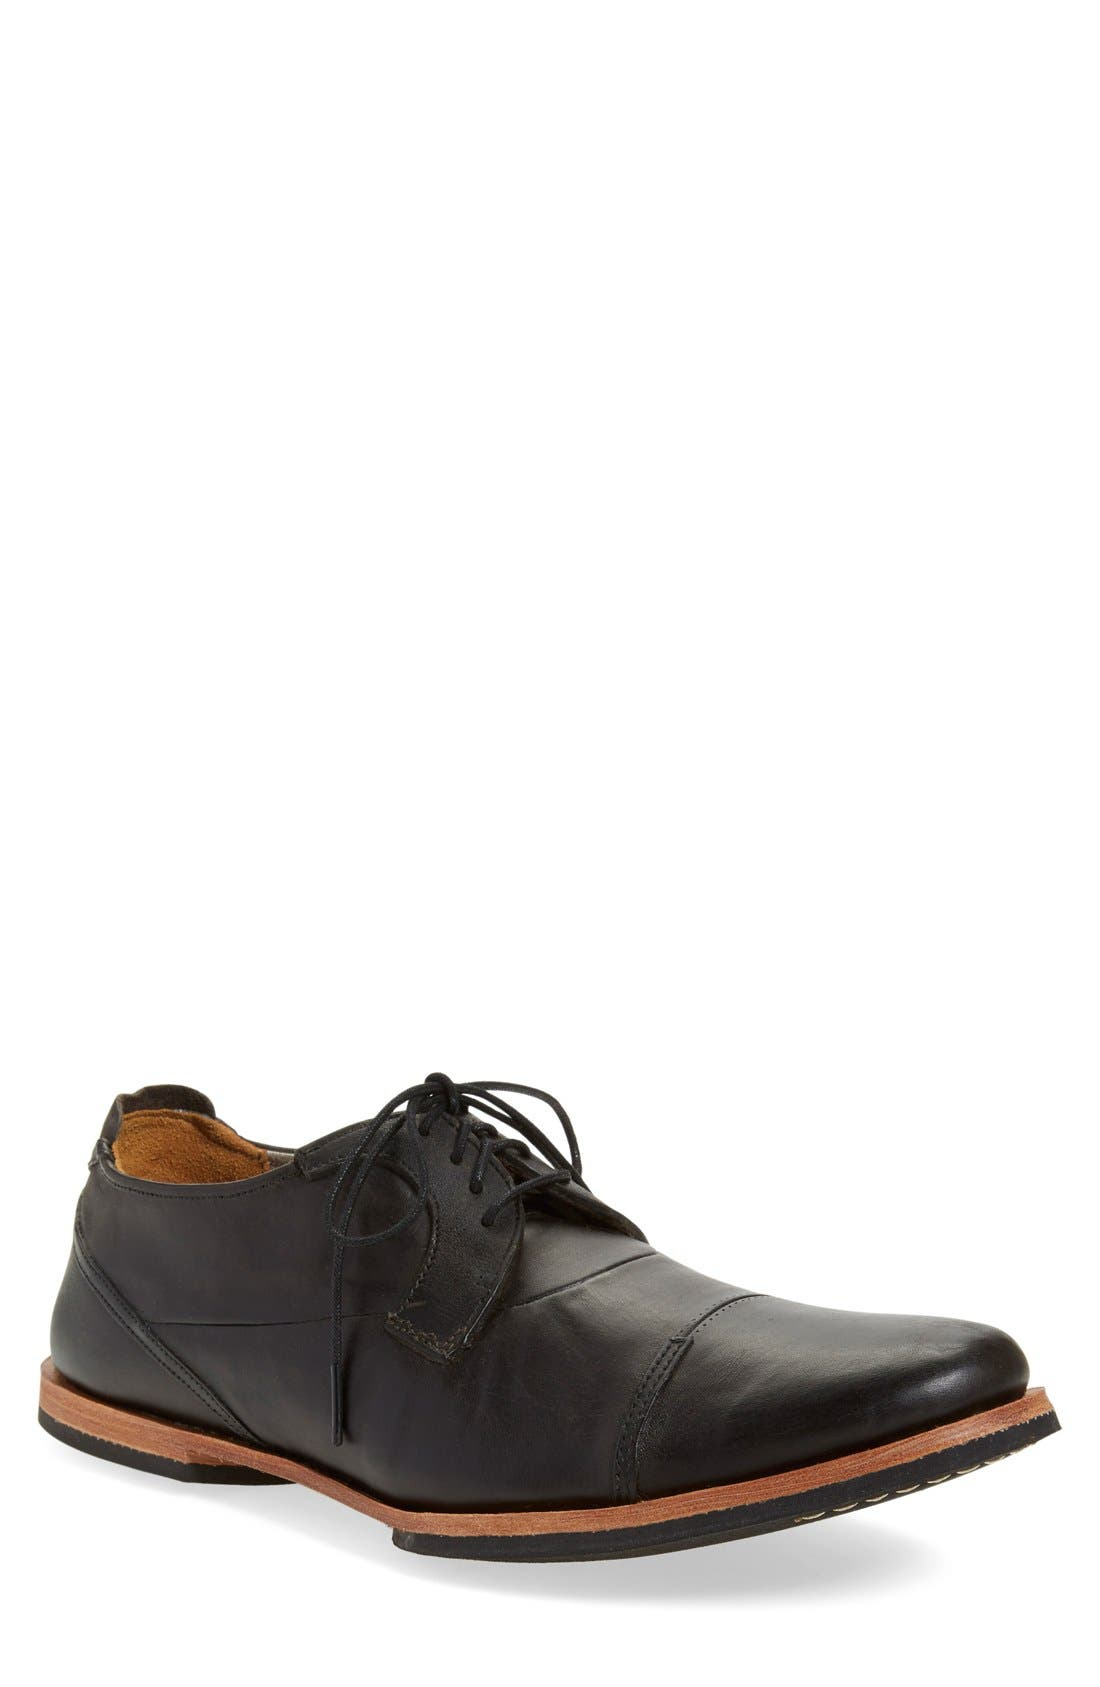 'Wodehouse Lost History' Cap Toe Oxford,                         Main,                         color, Burnished Black Leather